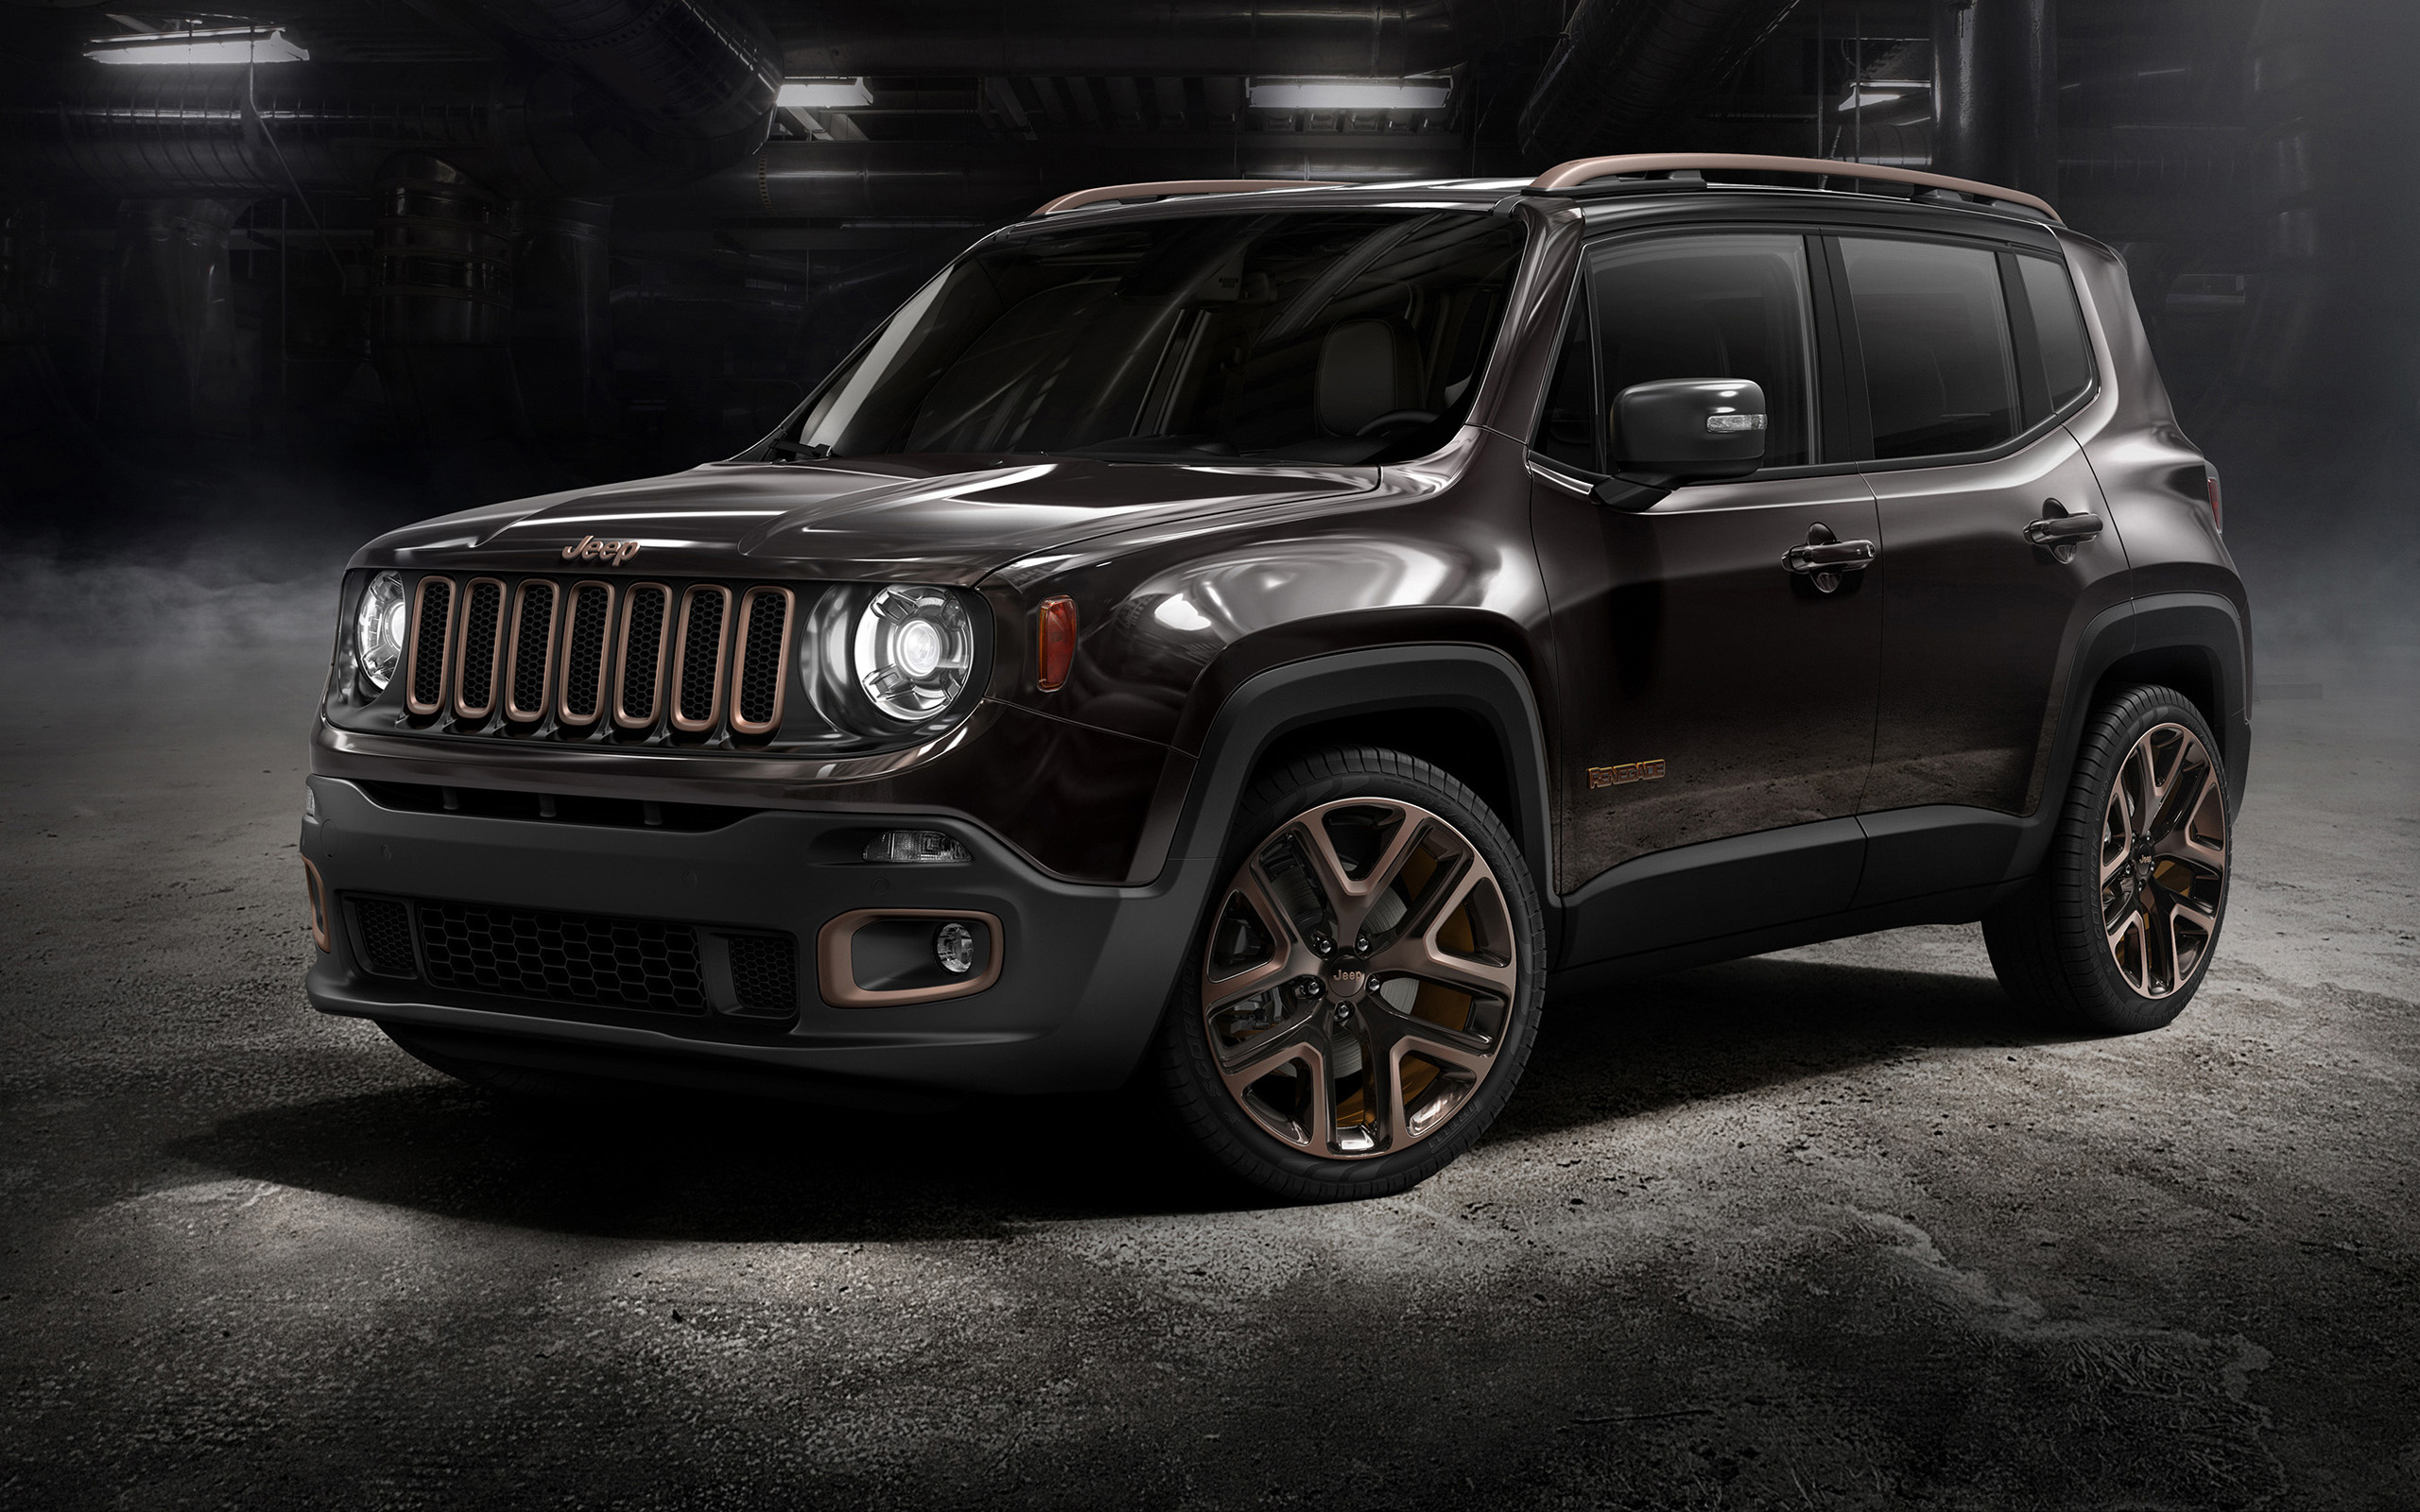 2014 Jeep Renegade Zi You Xia Concept Wallpaper Hd Car